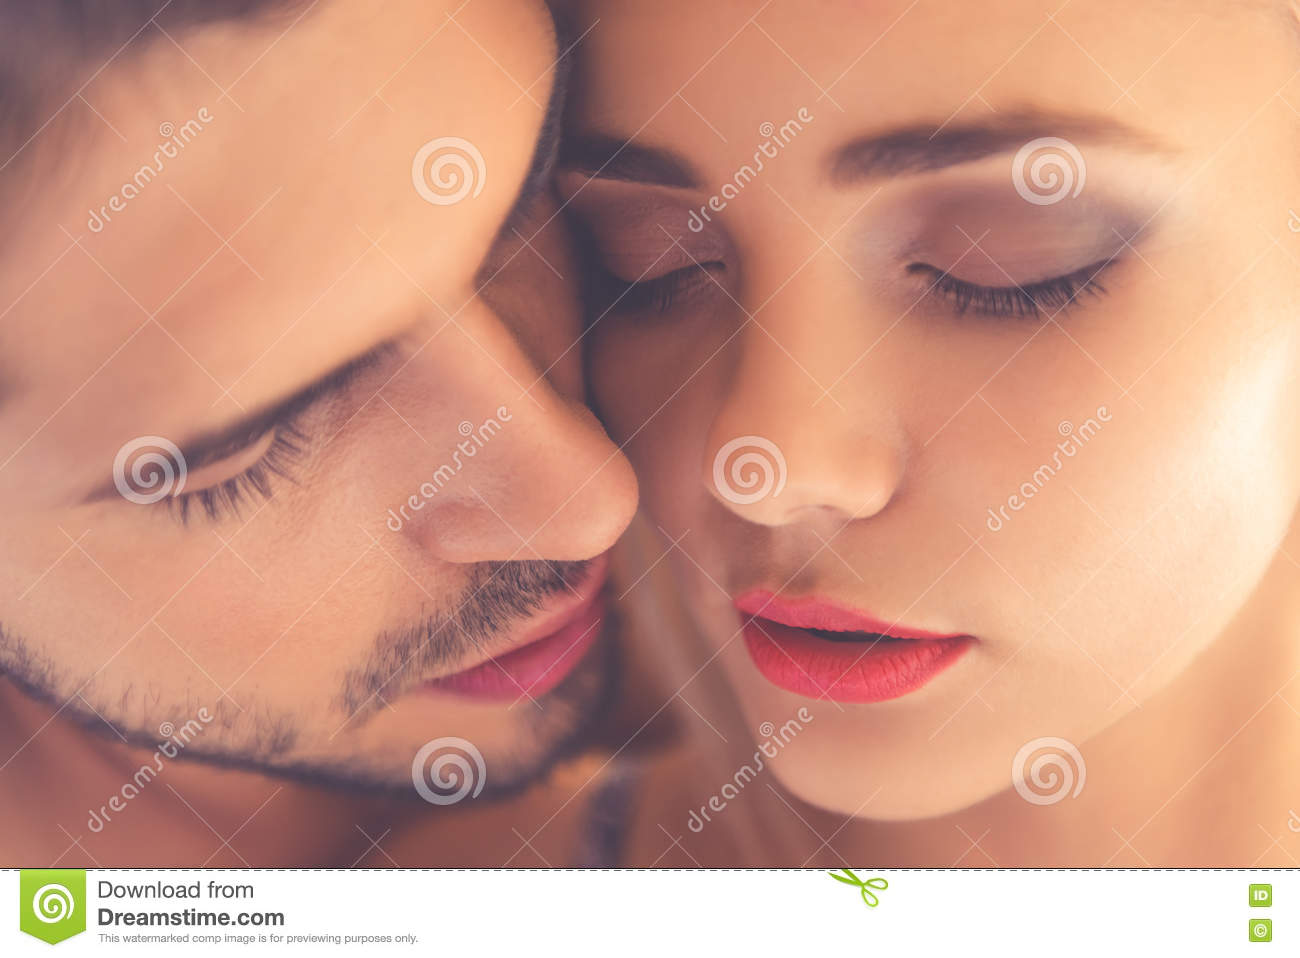 people having sex close up